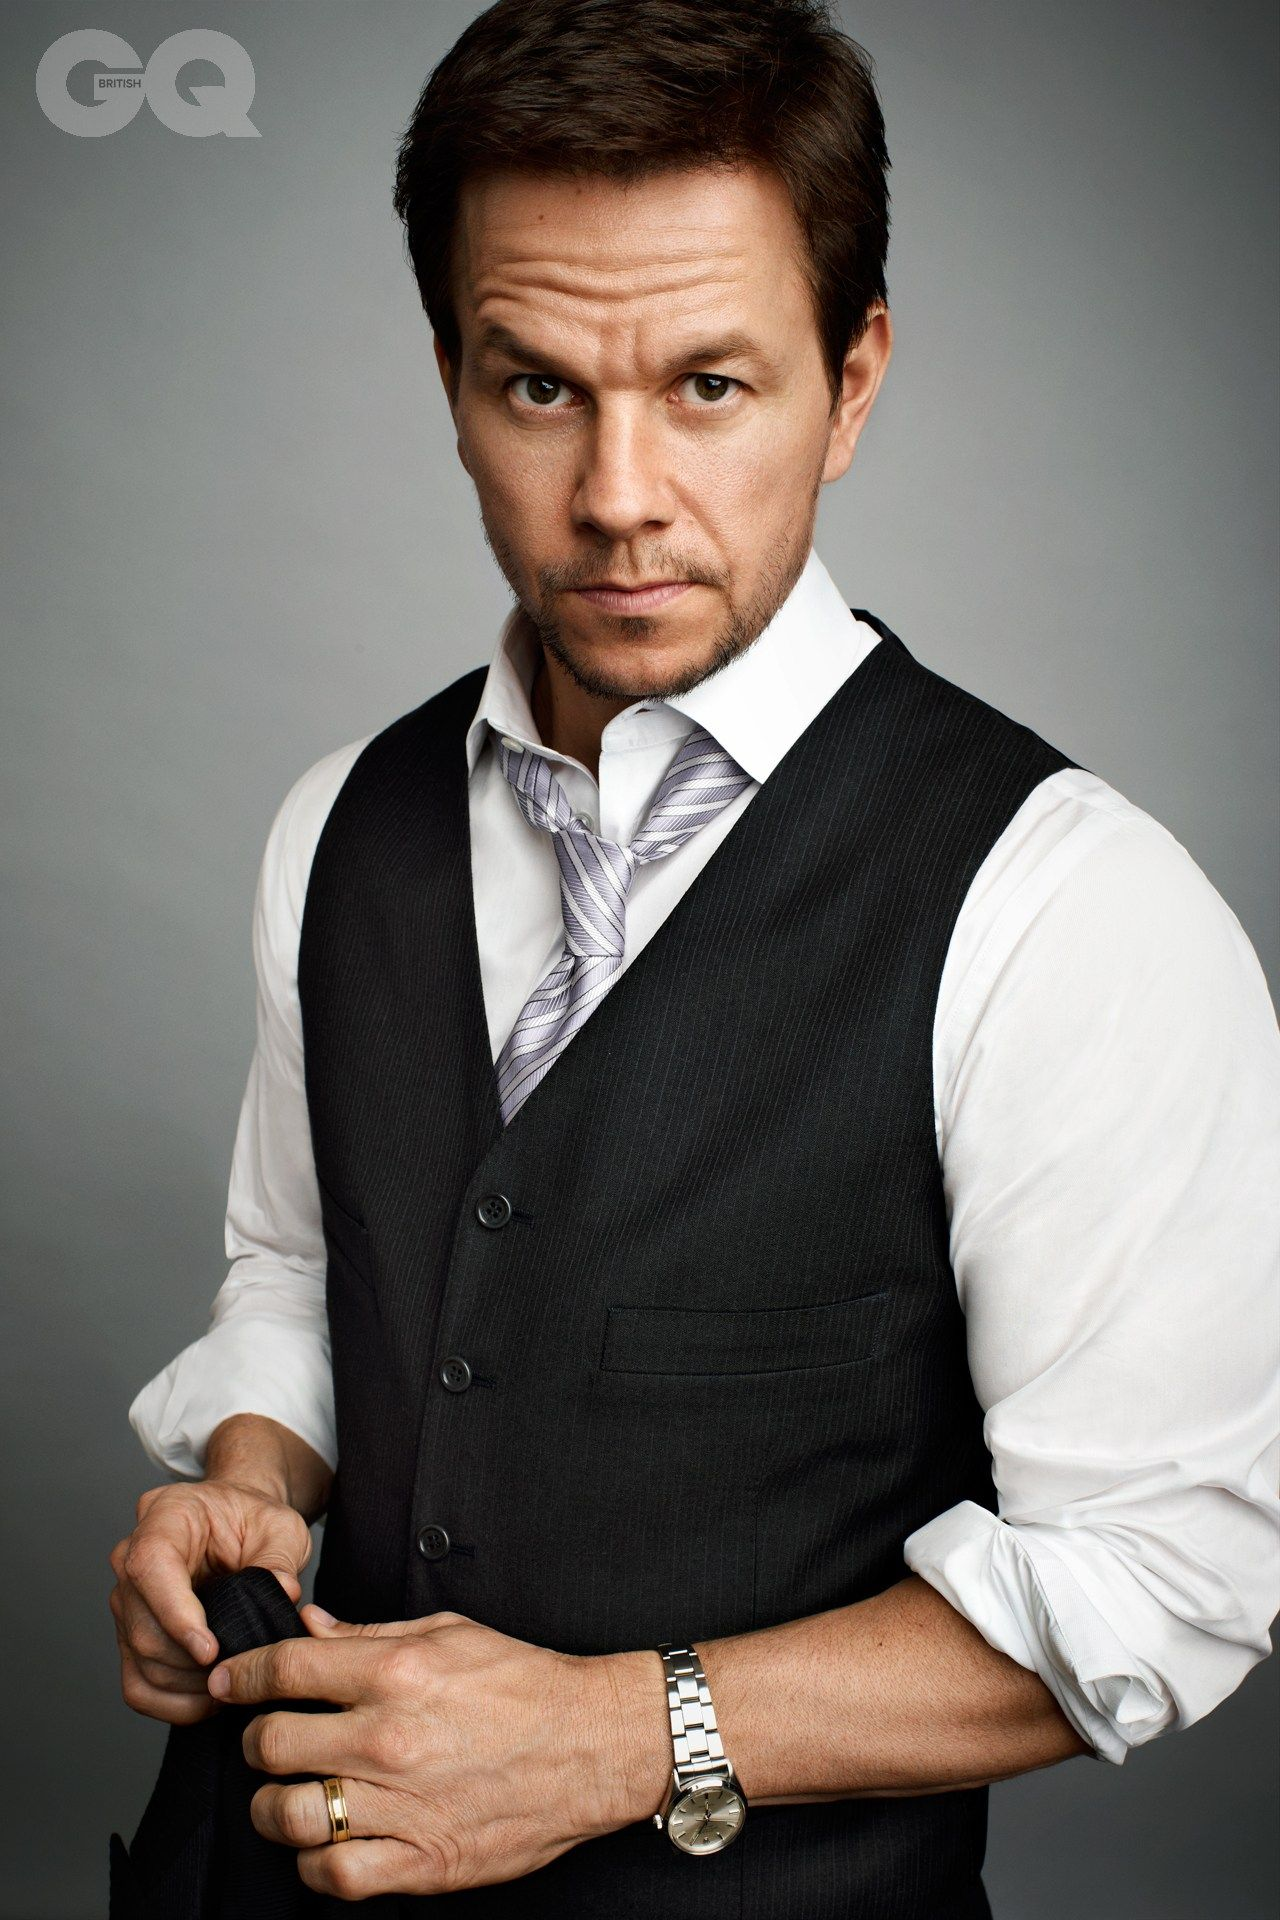 mark wahlberg - Google Search | male finesse | Pinterest ... Mark Wahlberg